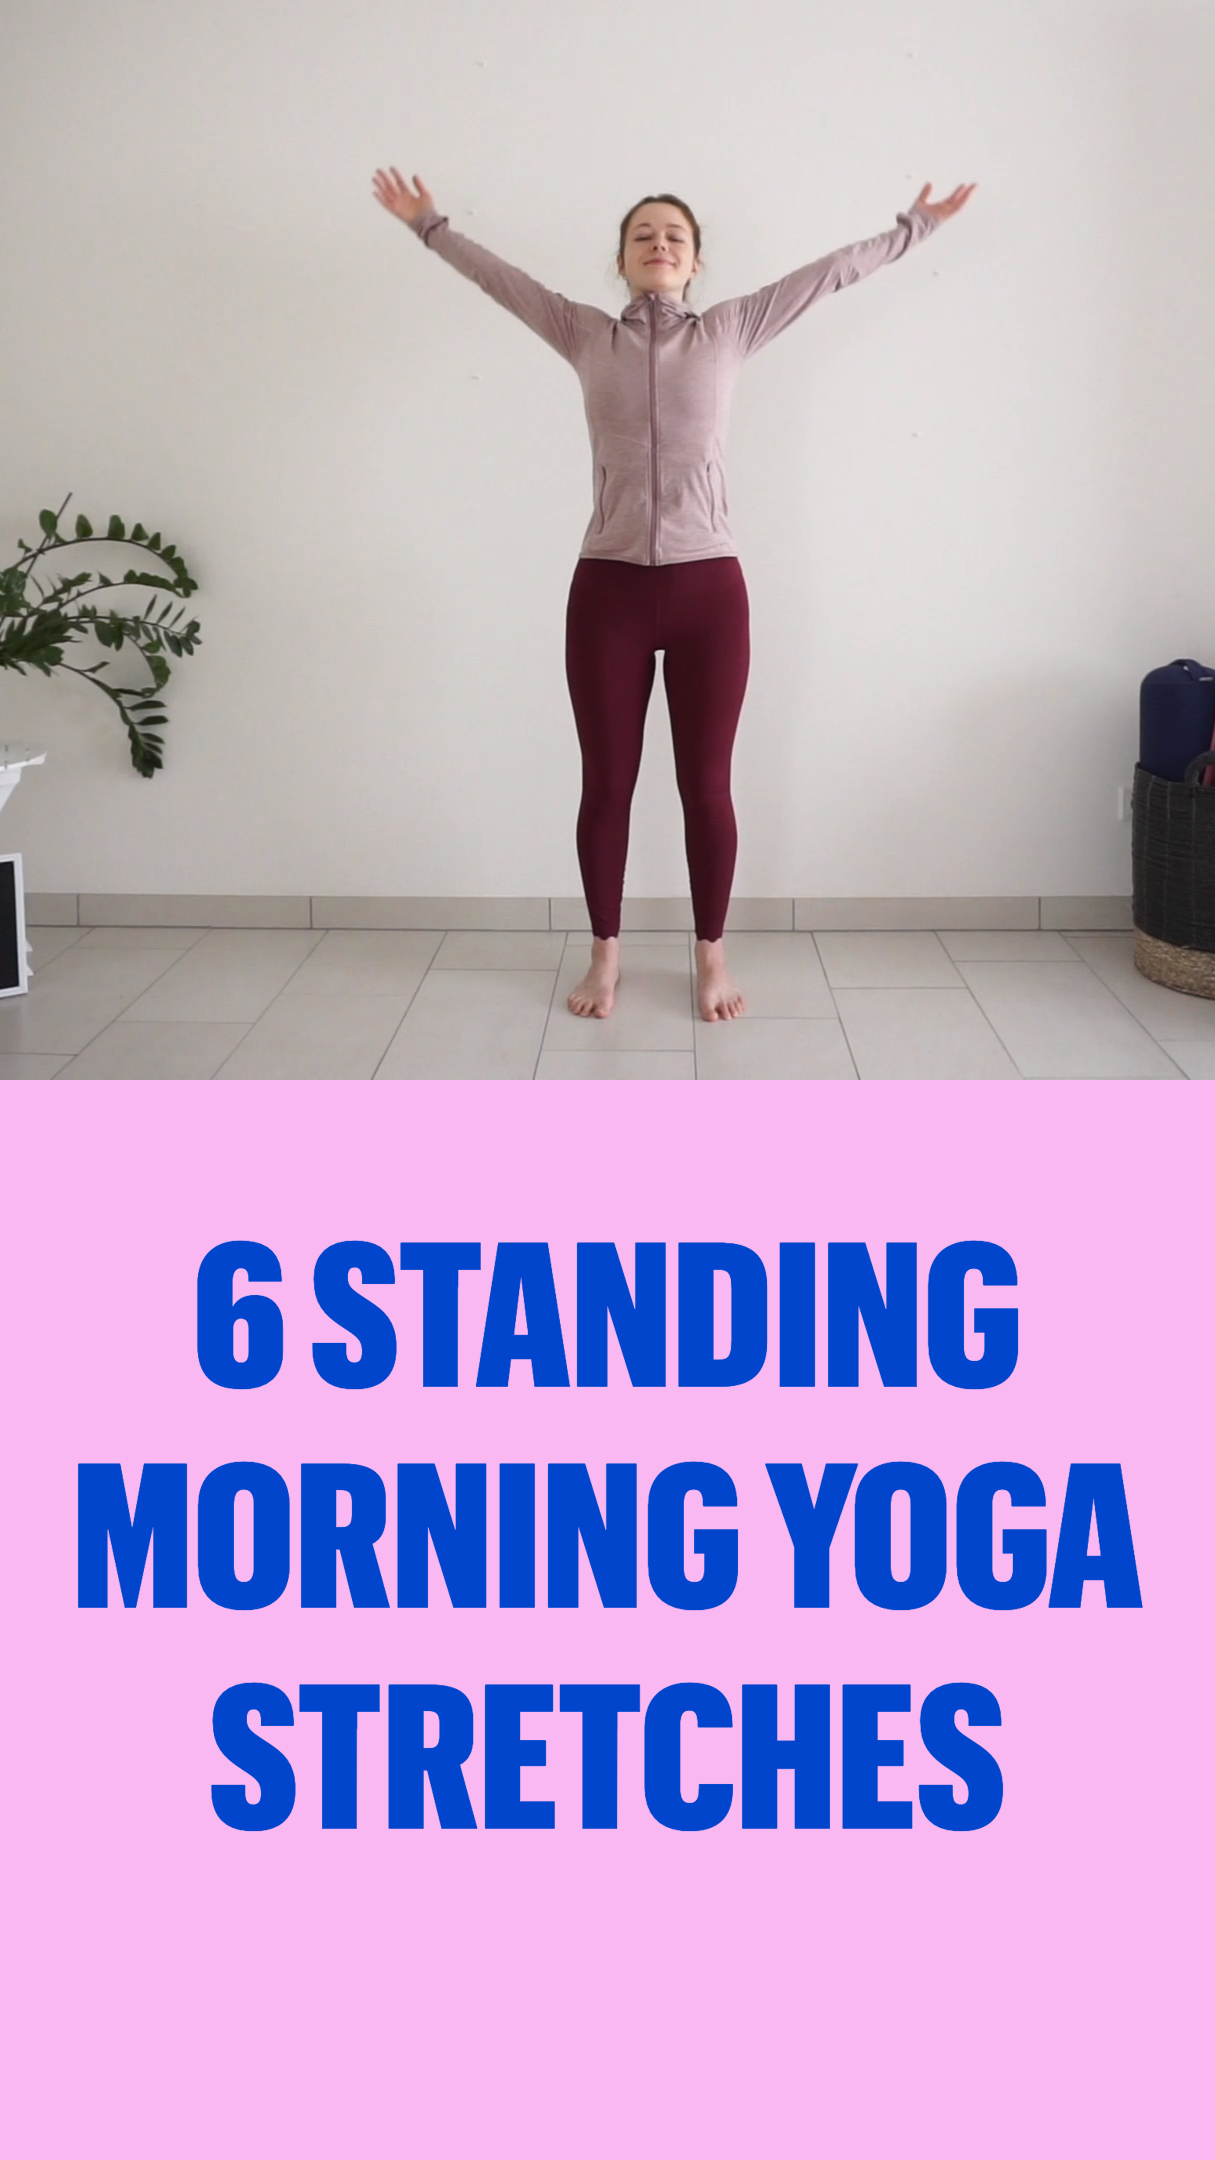 6 Standing Morning YogaStretches